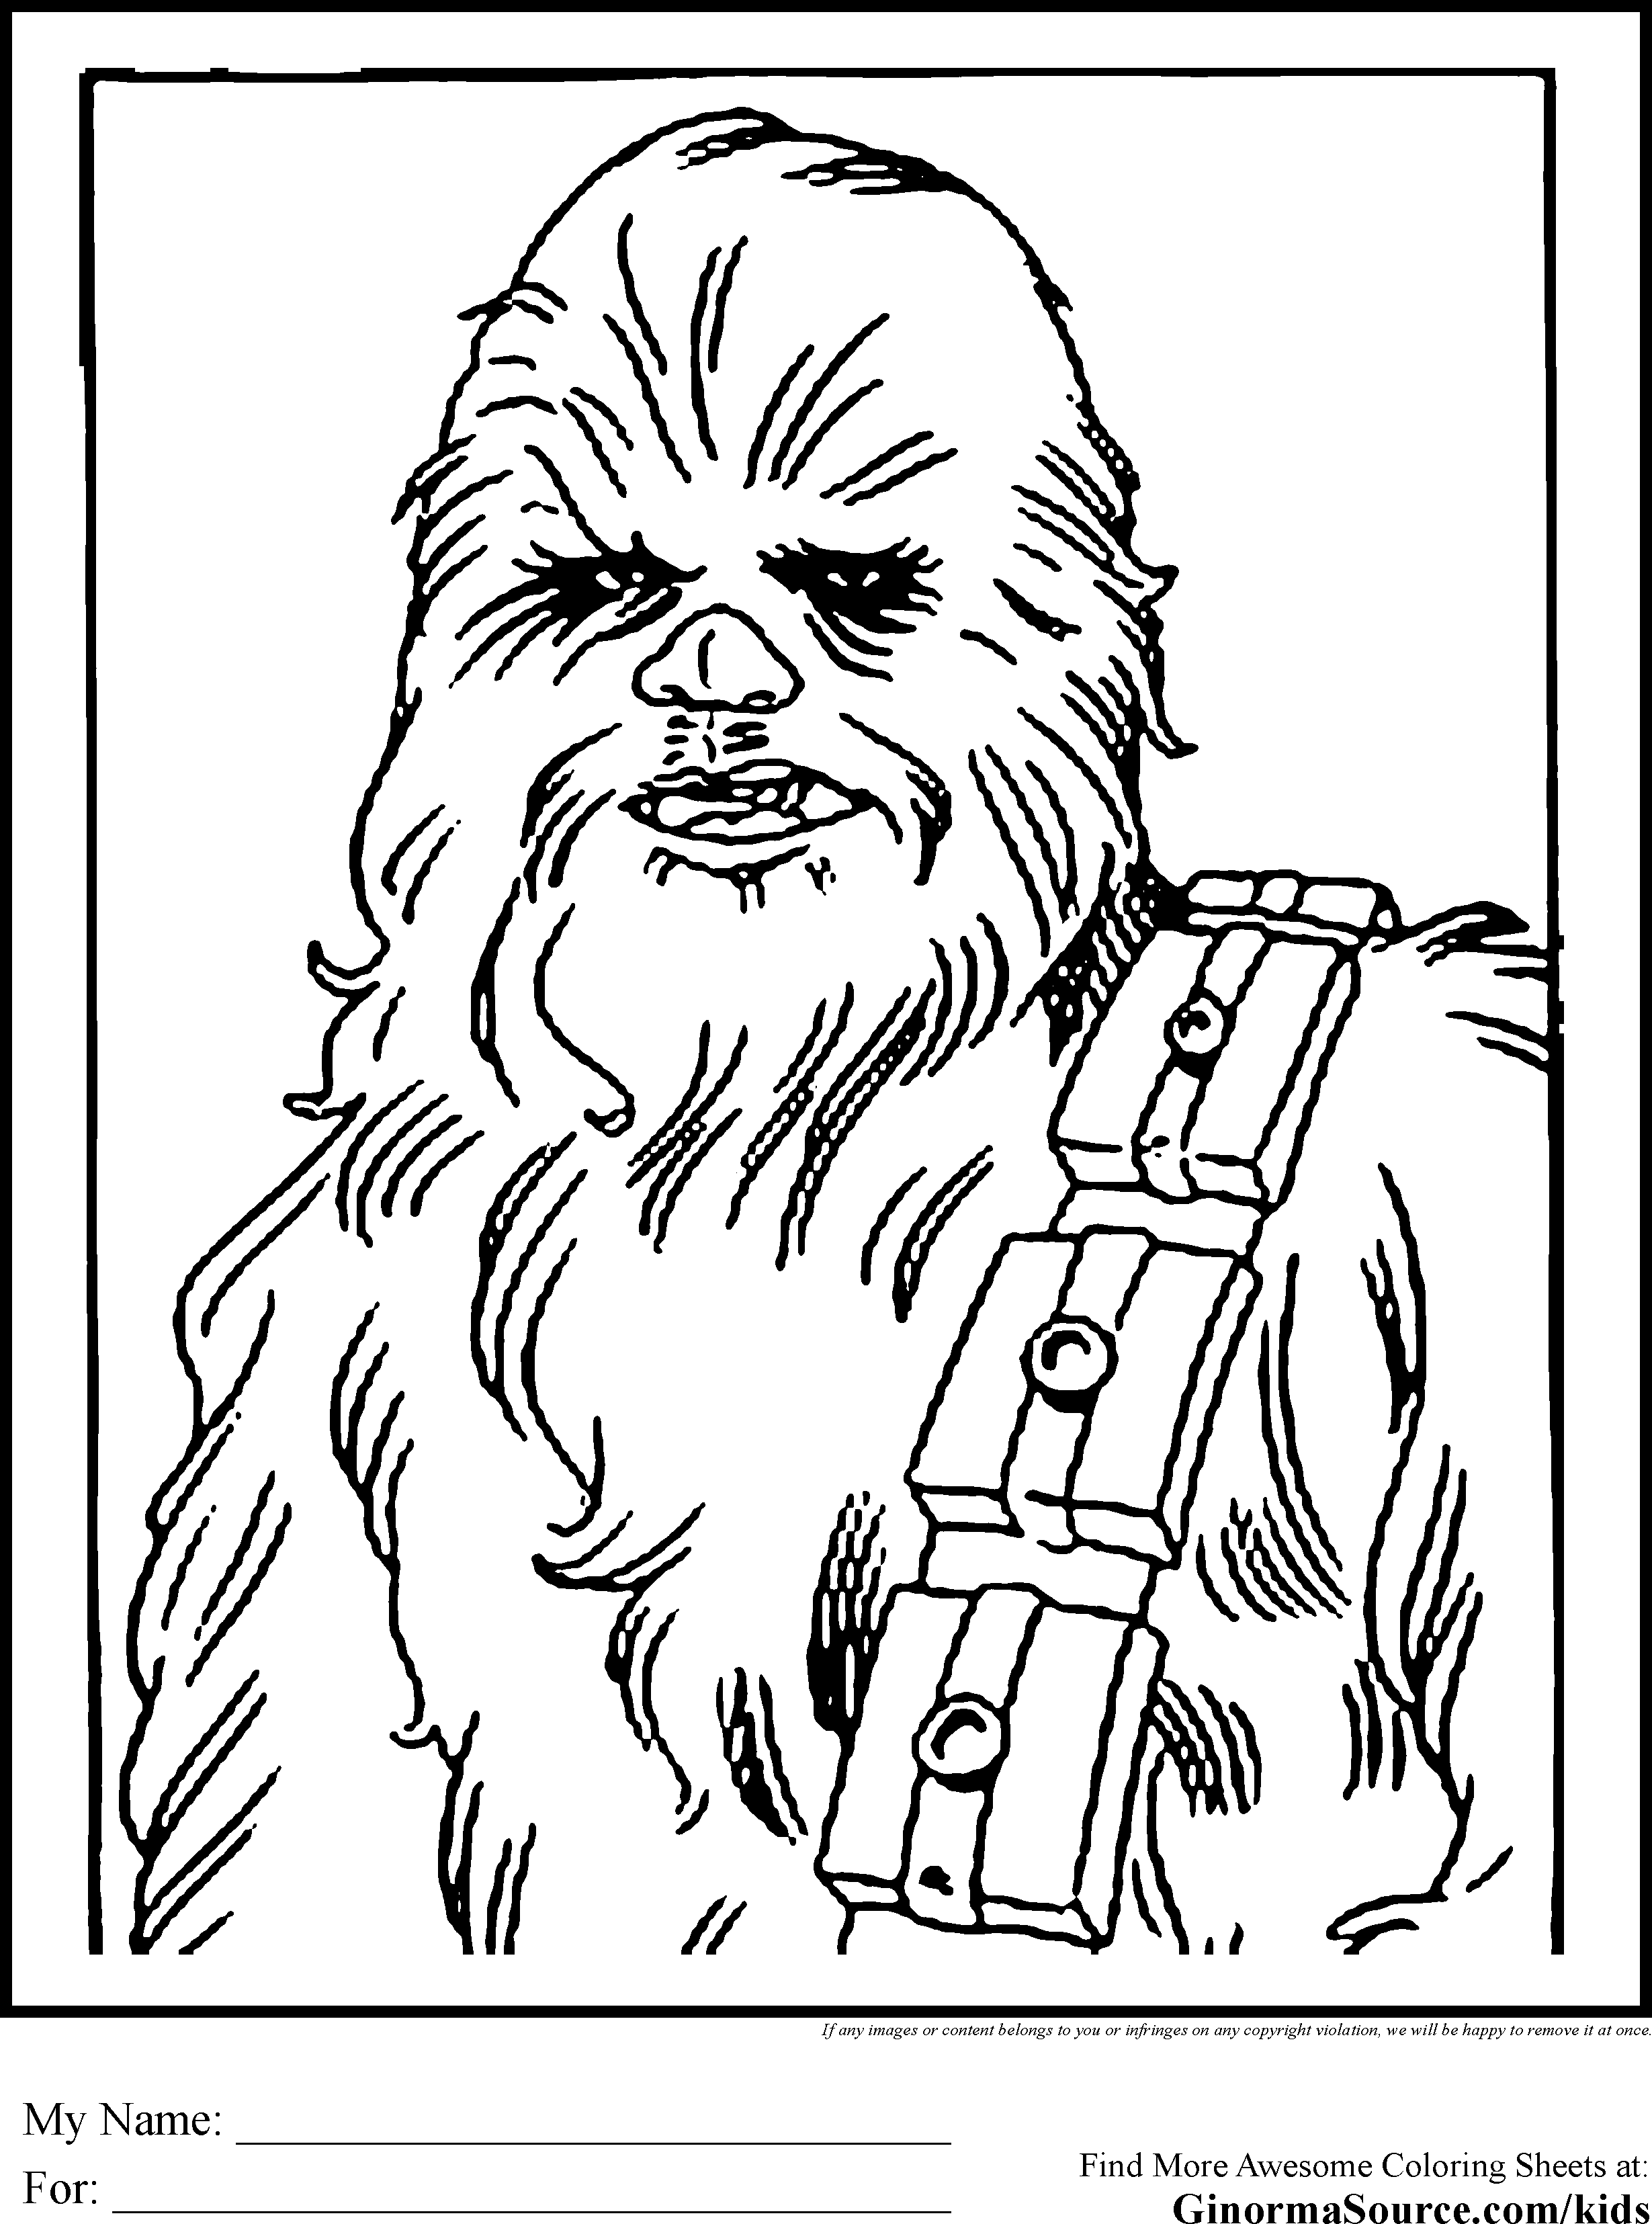 Star Wars Colouring Pages Chewbacca Wookie | Star wars coloring book, Star coloring  pages, Star wars colors